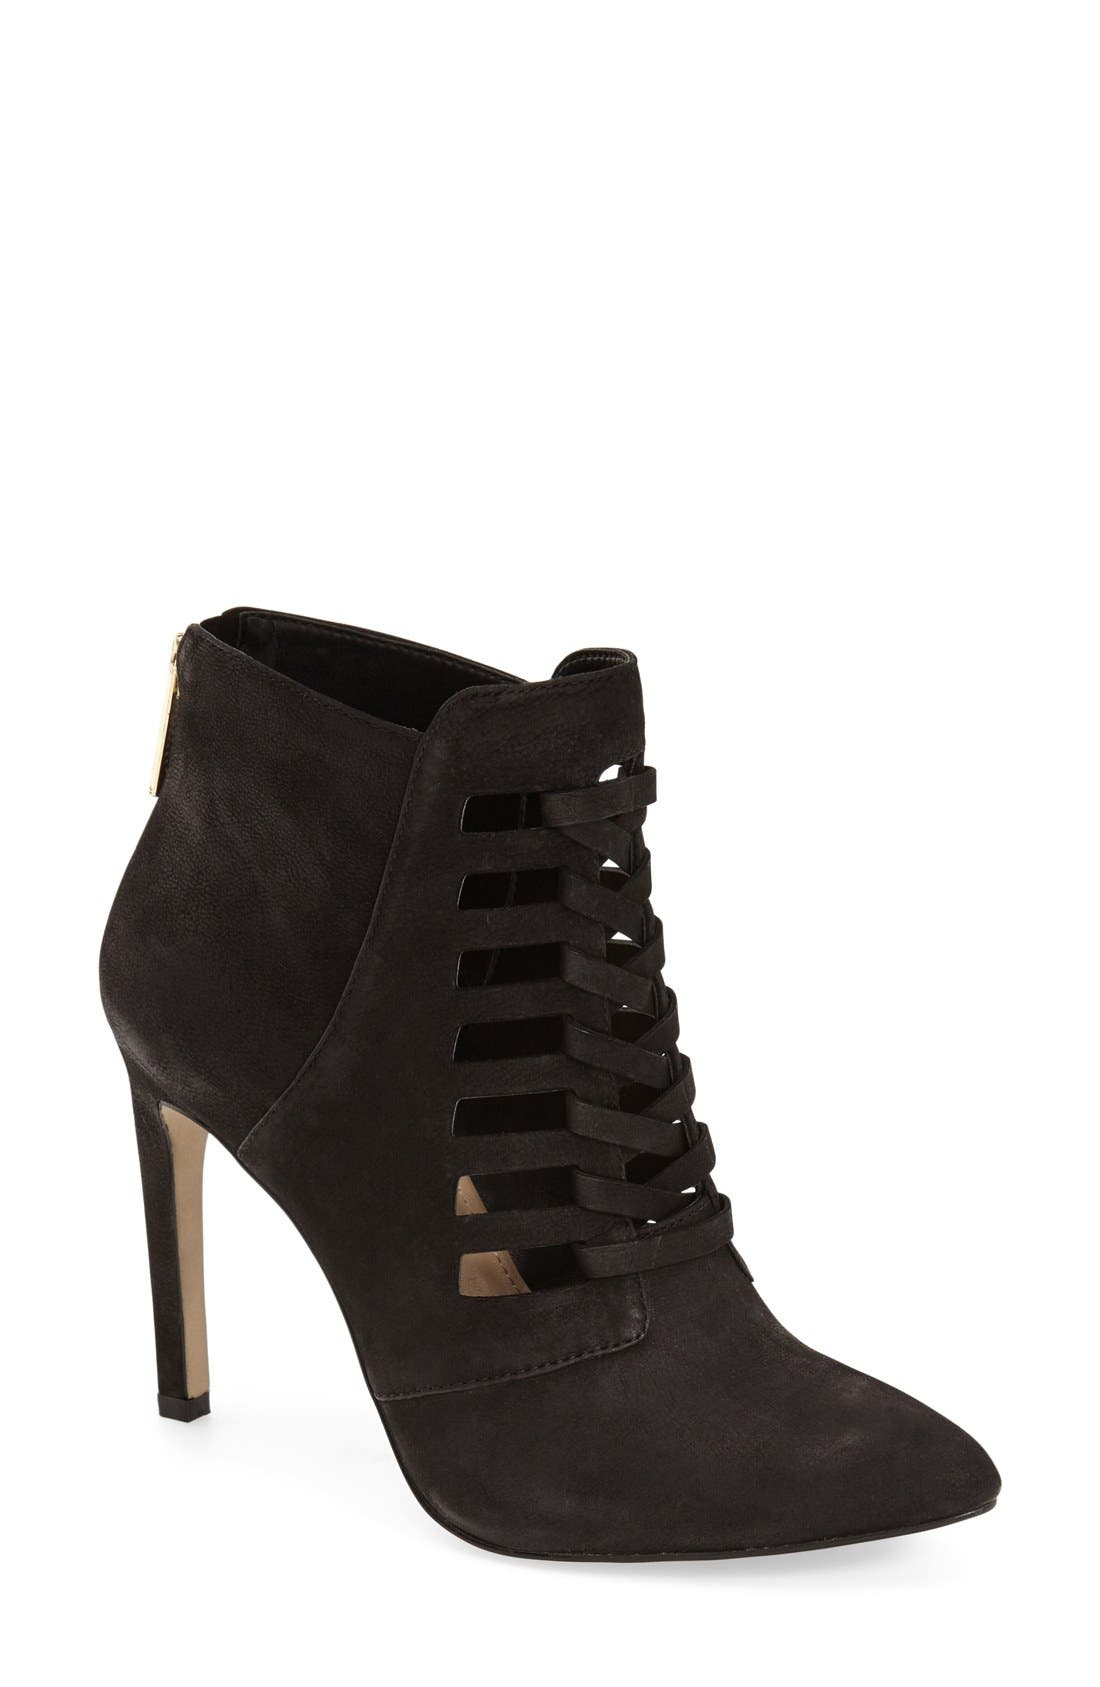 Alternate Image 1 Selected - BCBGeneration 'Coy' Bootie (Women)